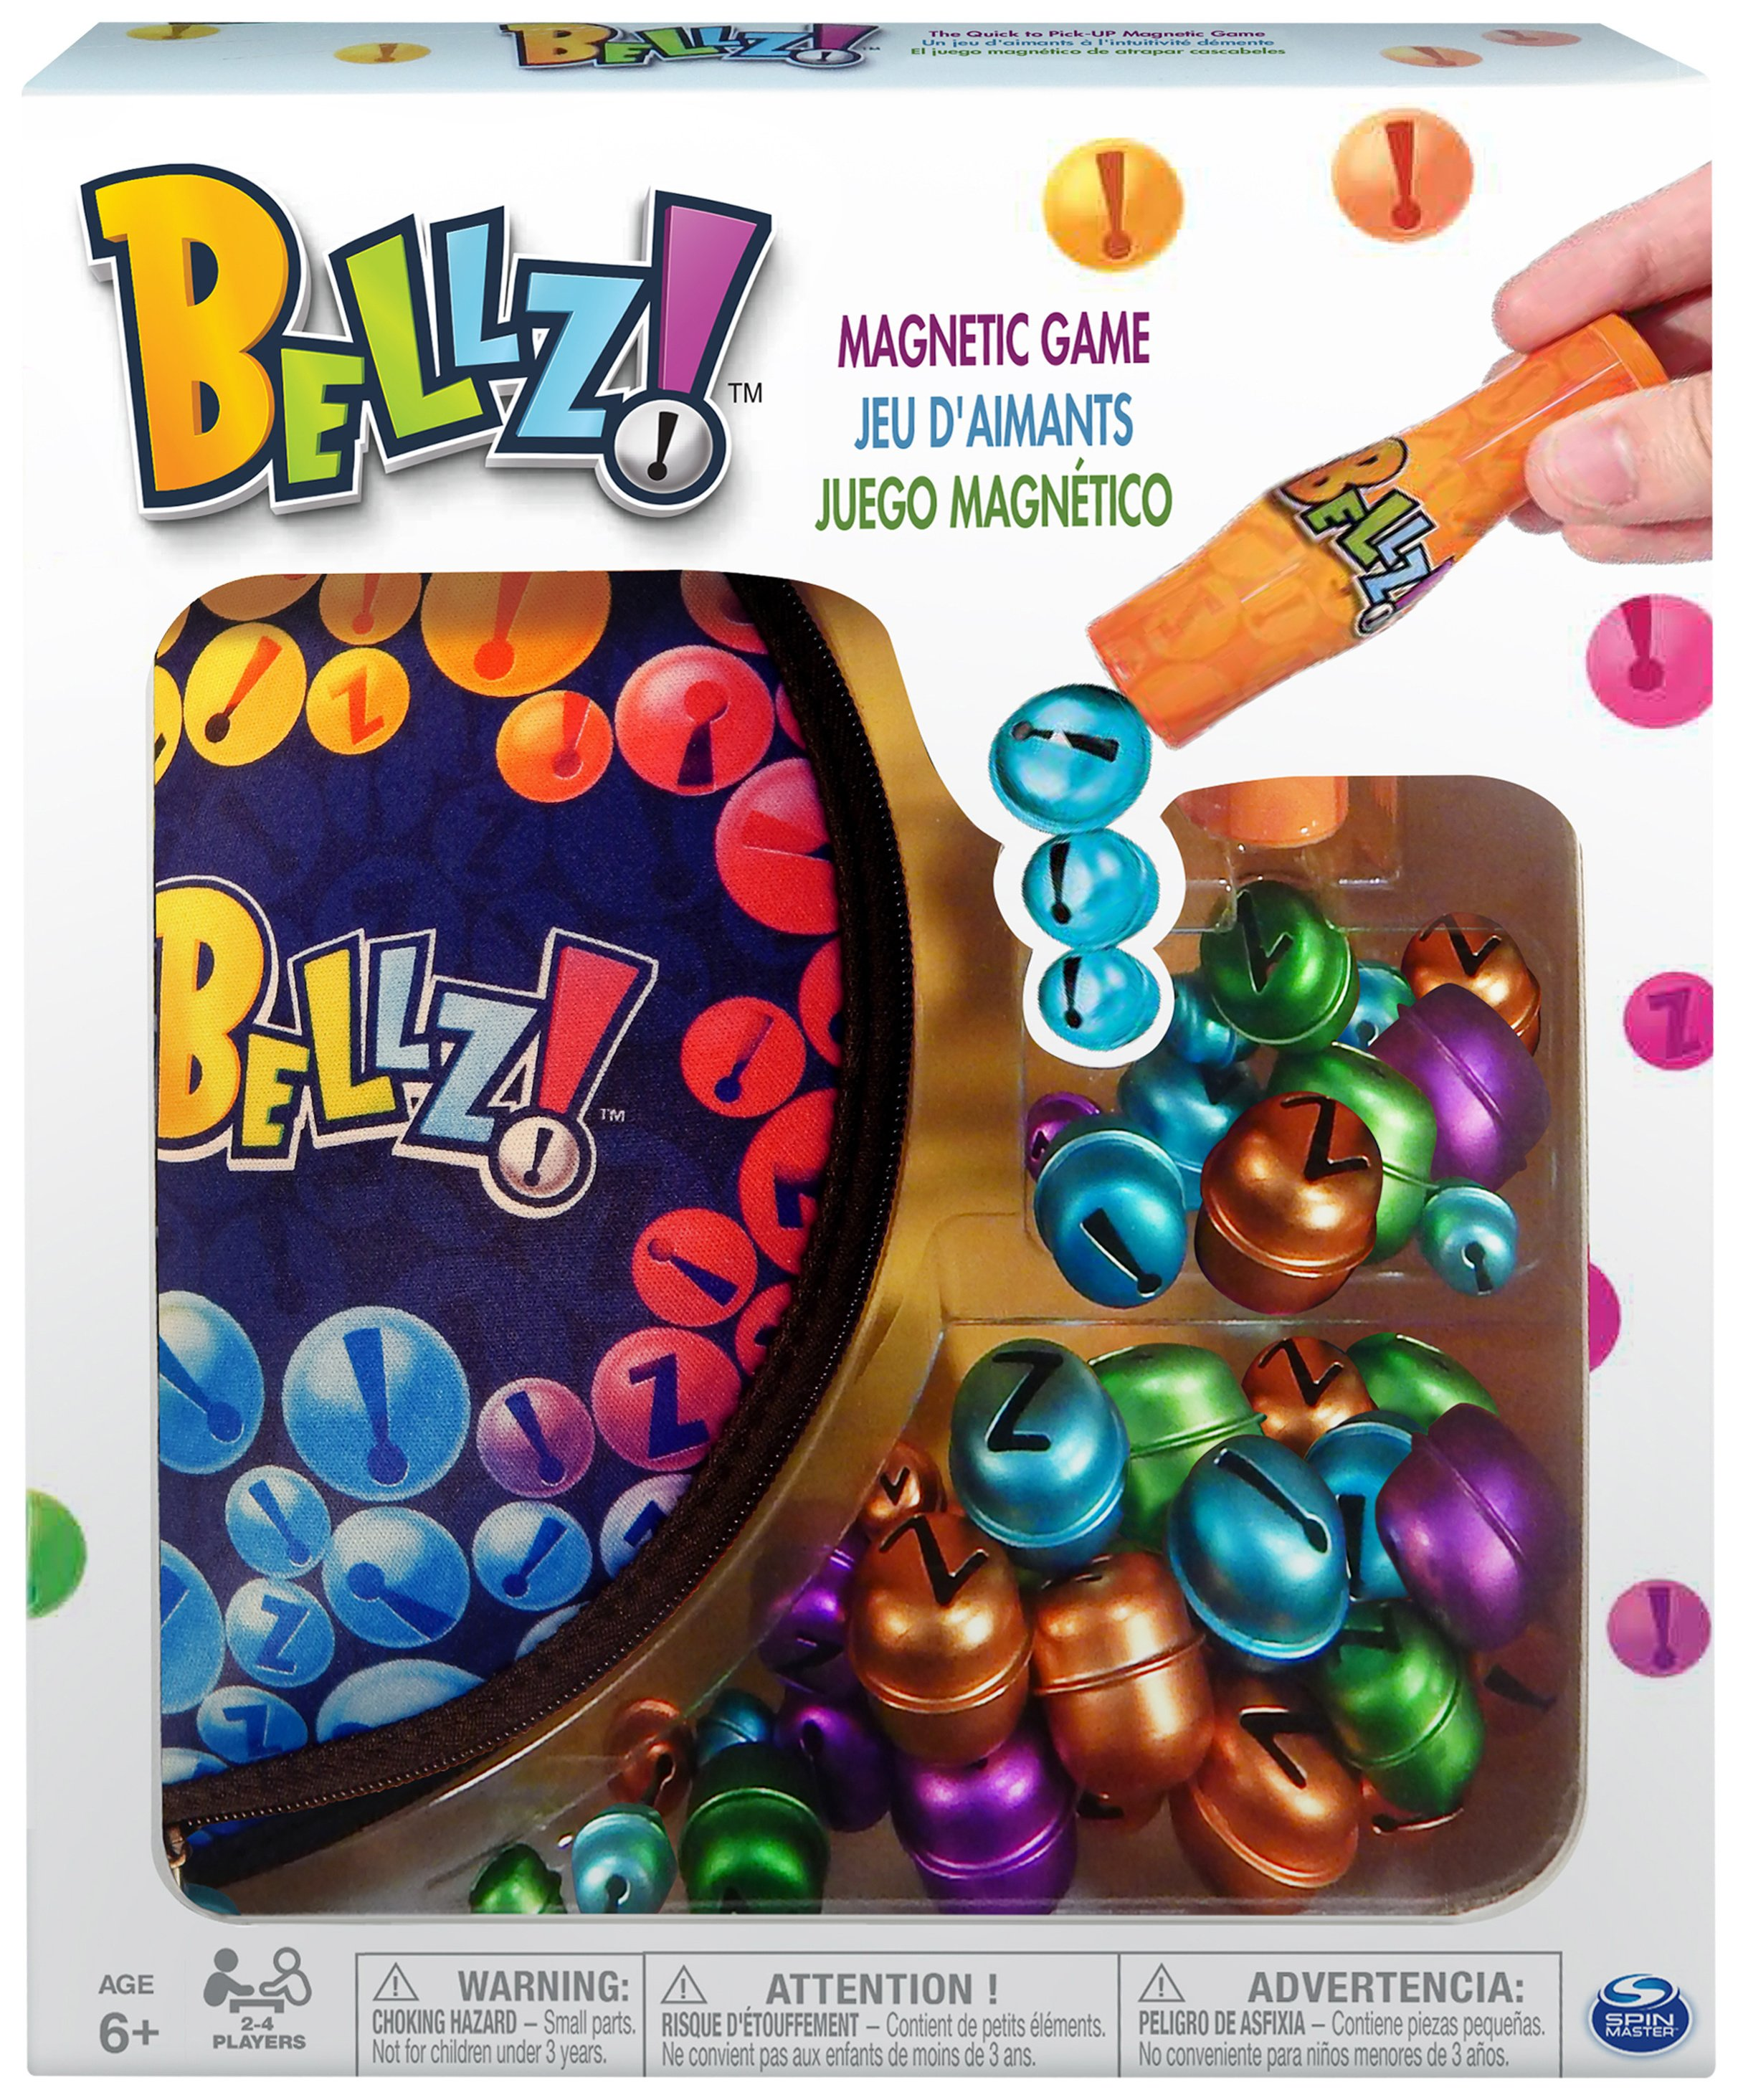 Image of BELLZ Portable Game.